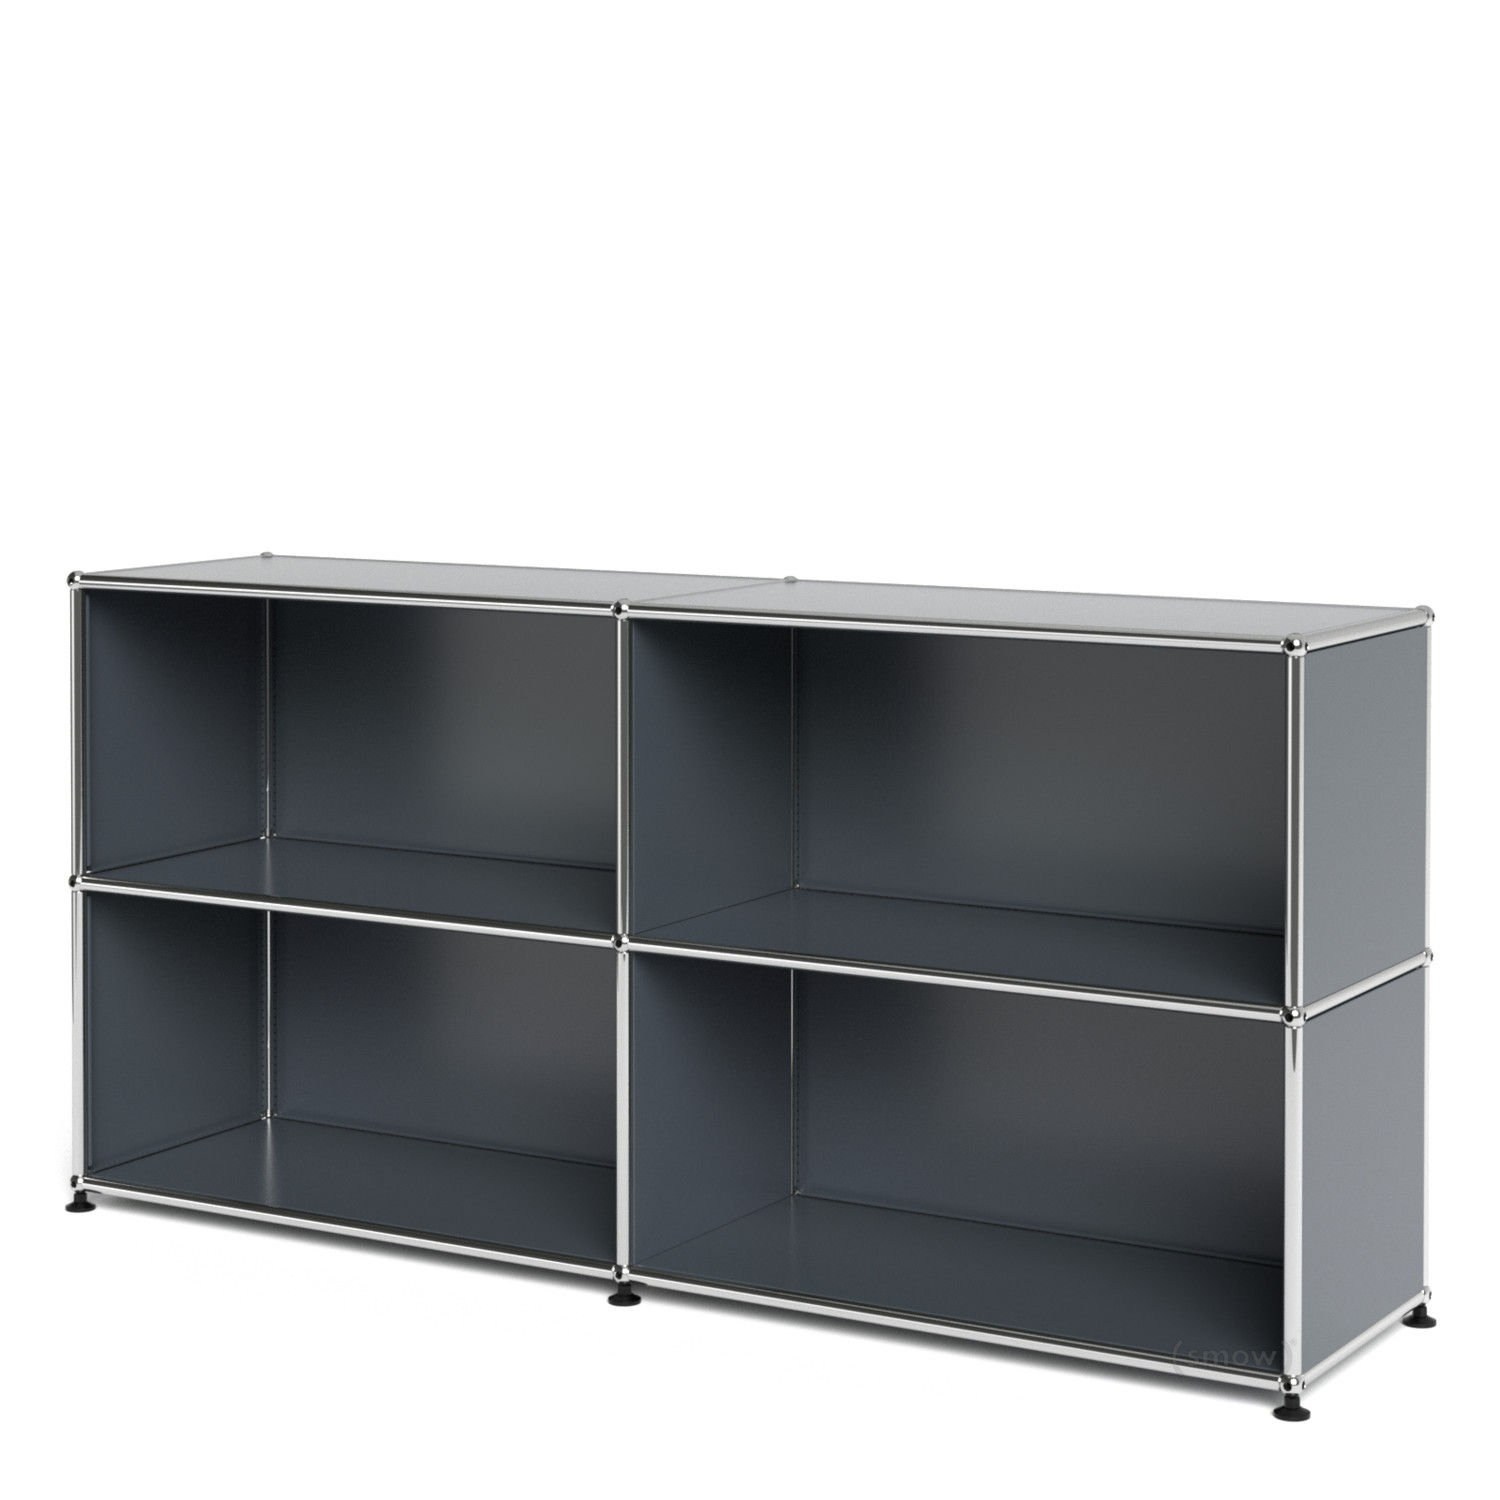 usm haller sideboard l open mid grey ral 7005 by fritz. Black Bedroom Furniture Sets. Home Design Ideas